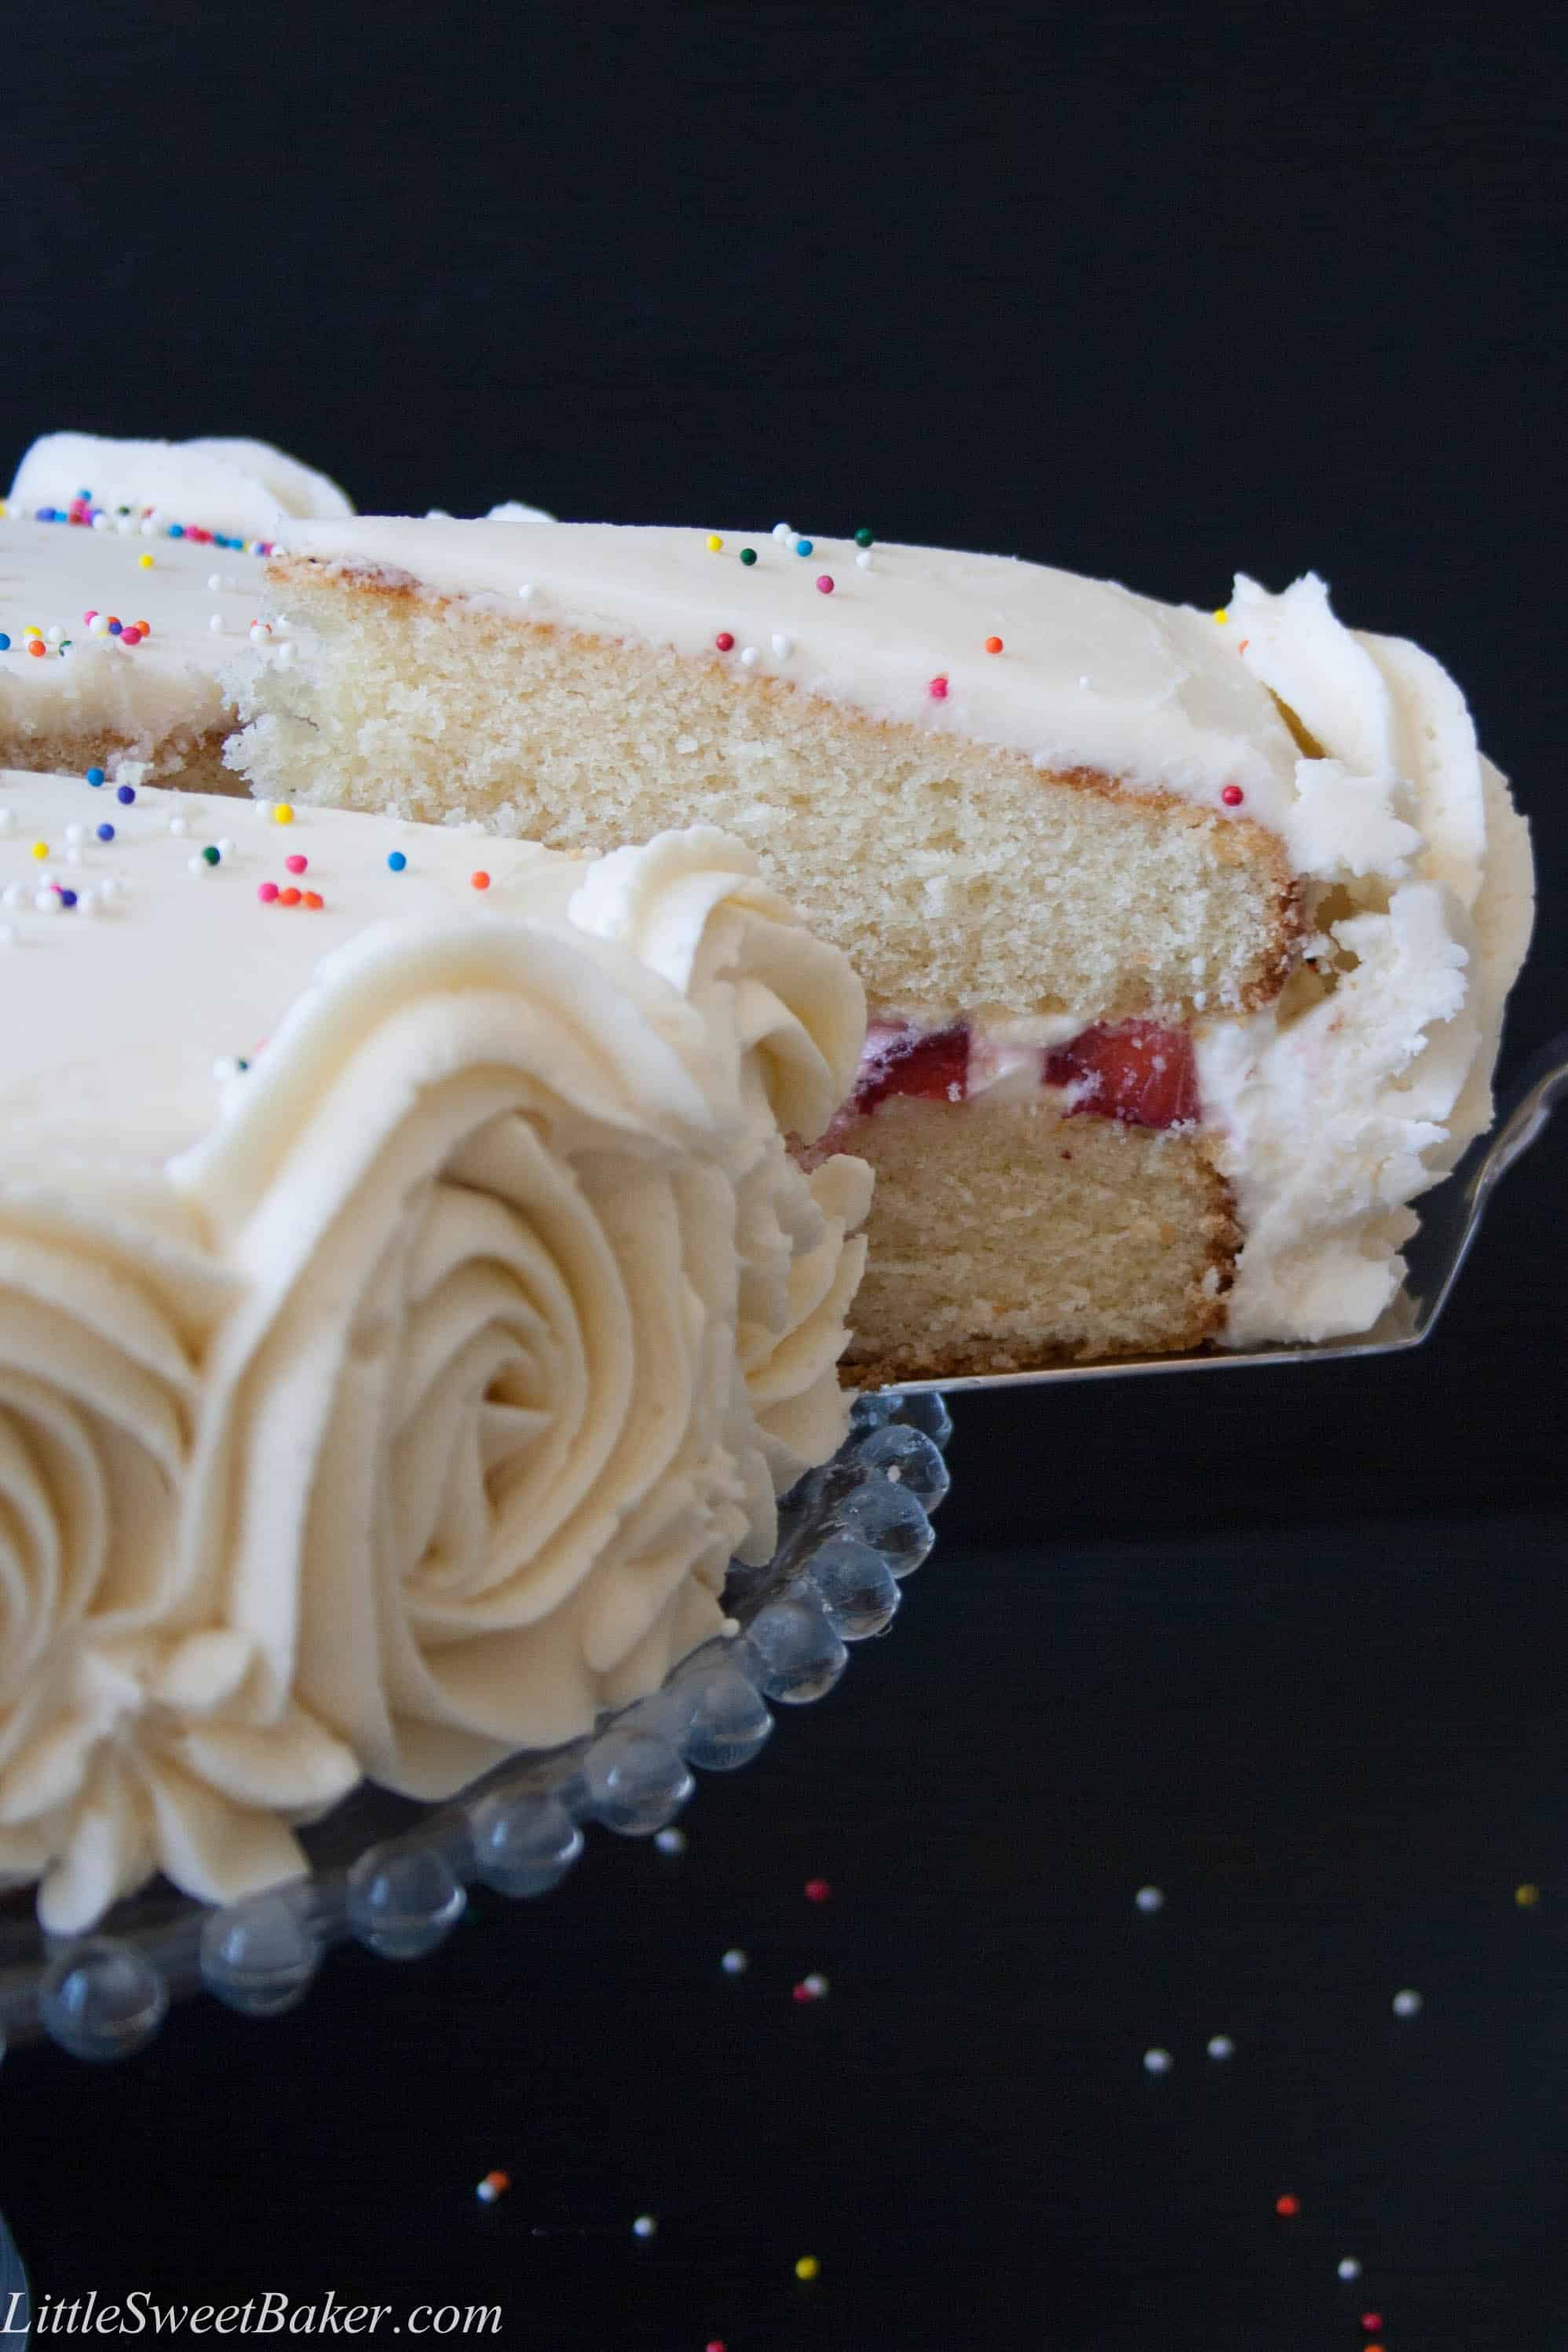 Moist and fluffy vanilla cake with strawberries and cream filling, surrounded with vanilla buttercream.